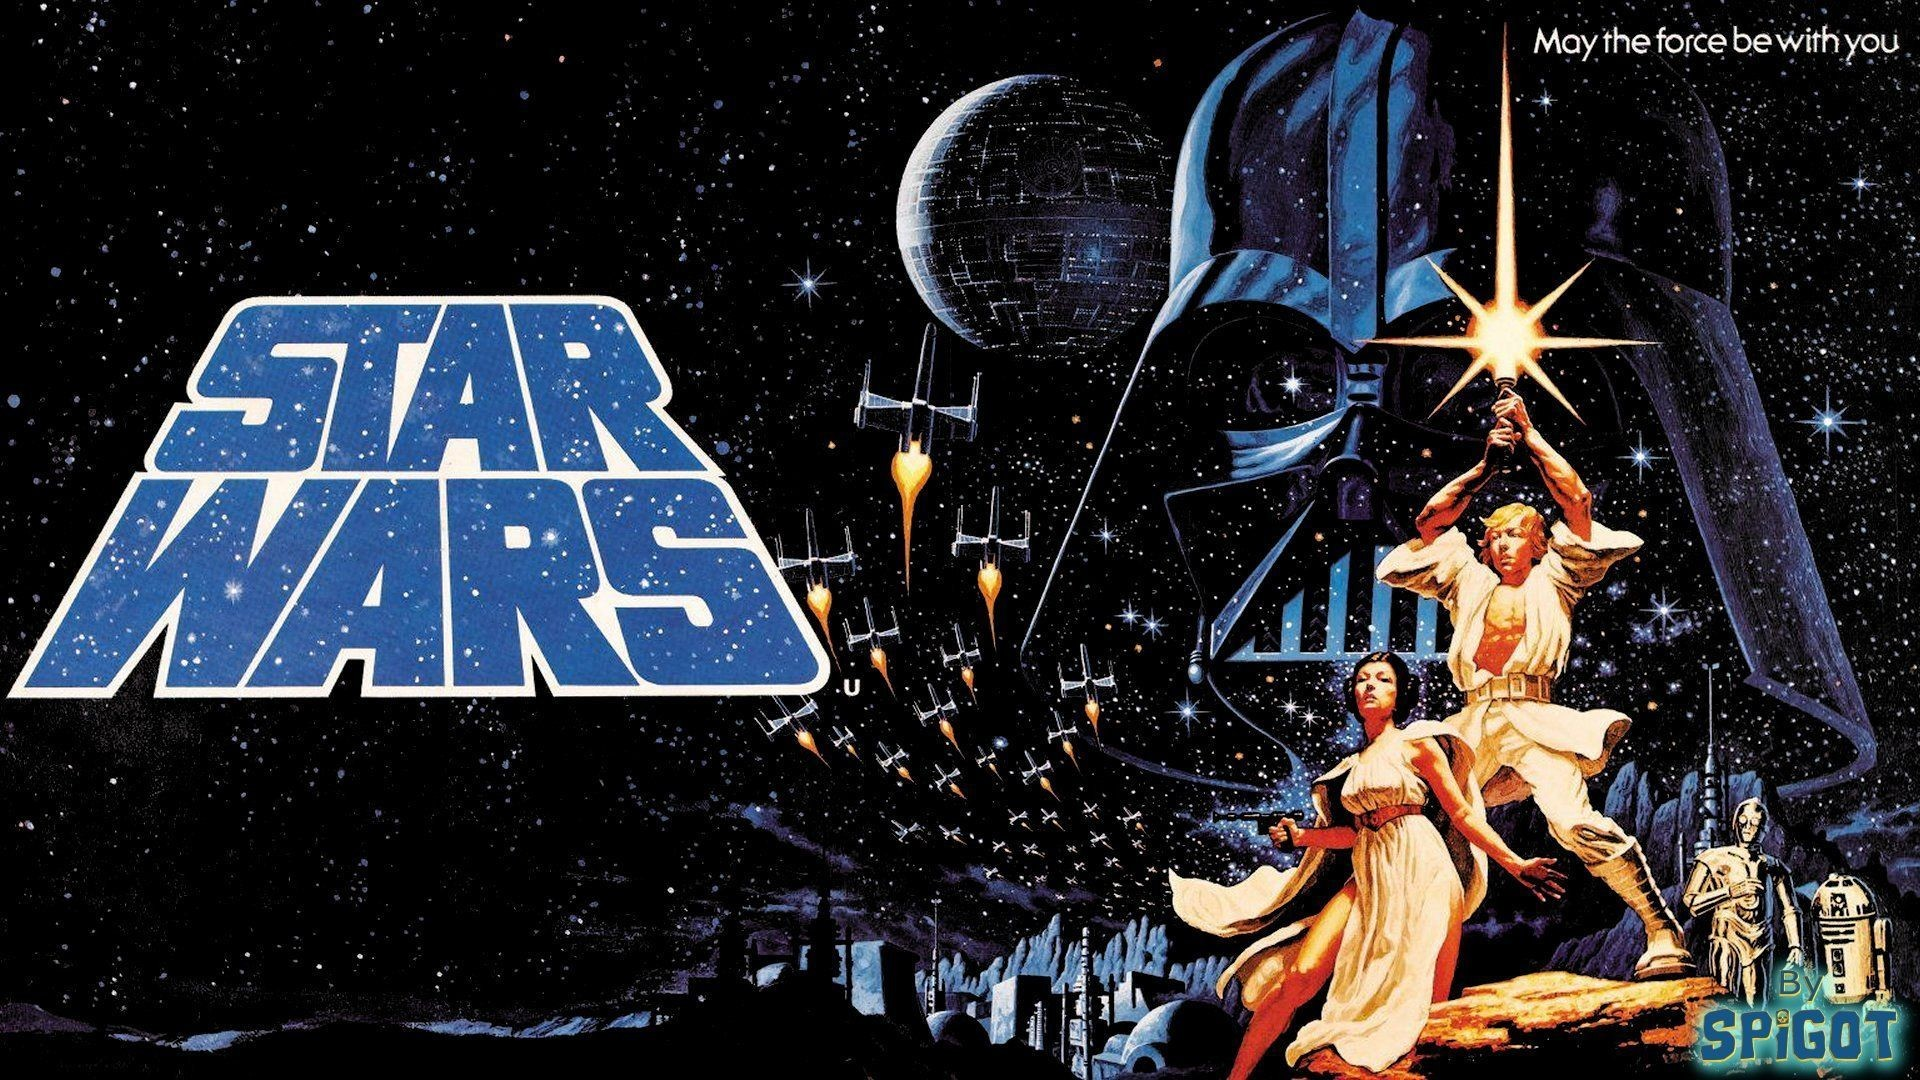 Awesome Star Wars HD Wallpaper Pack 86   Free Download